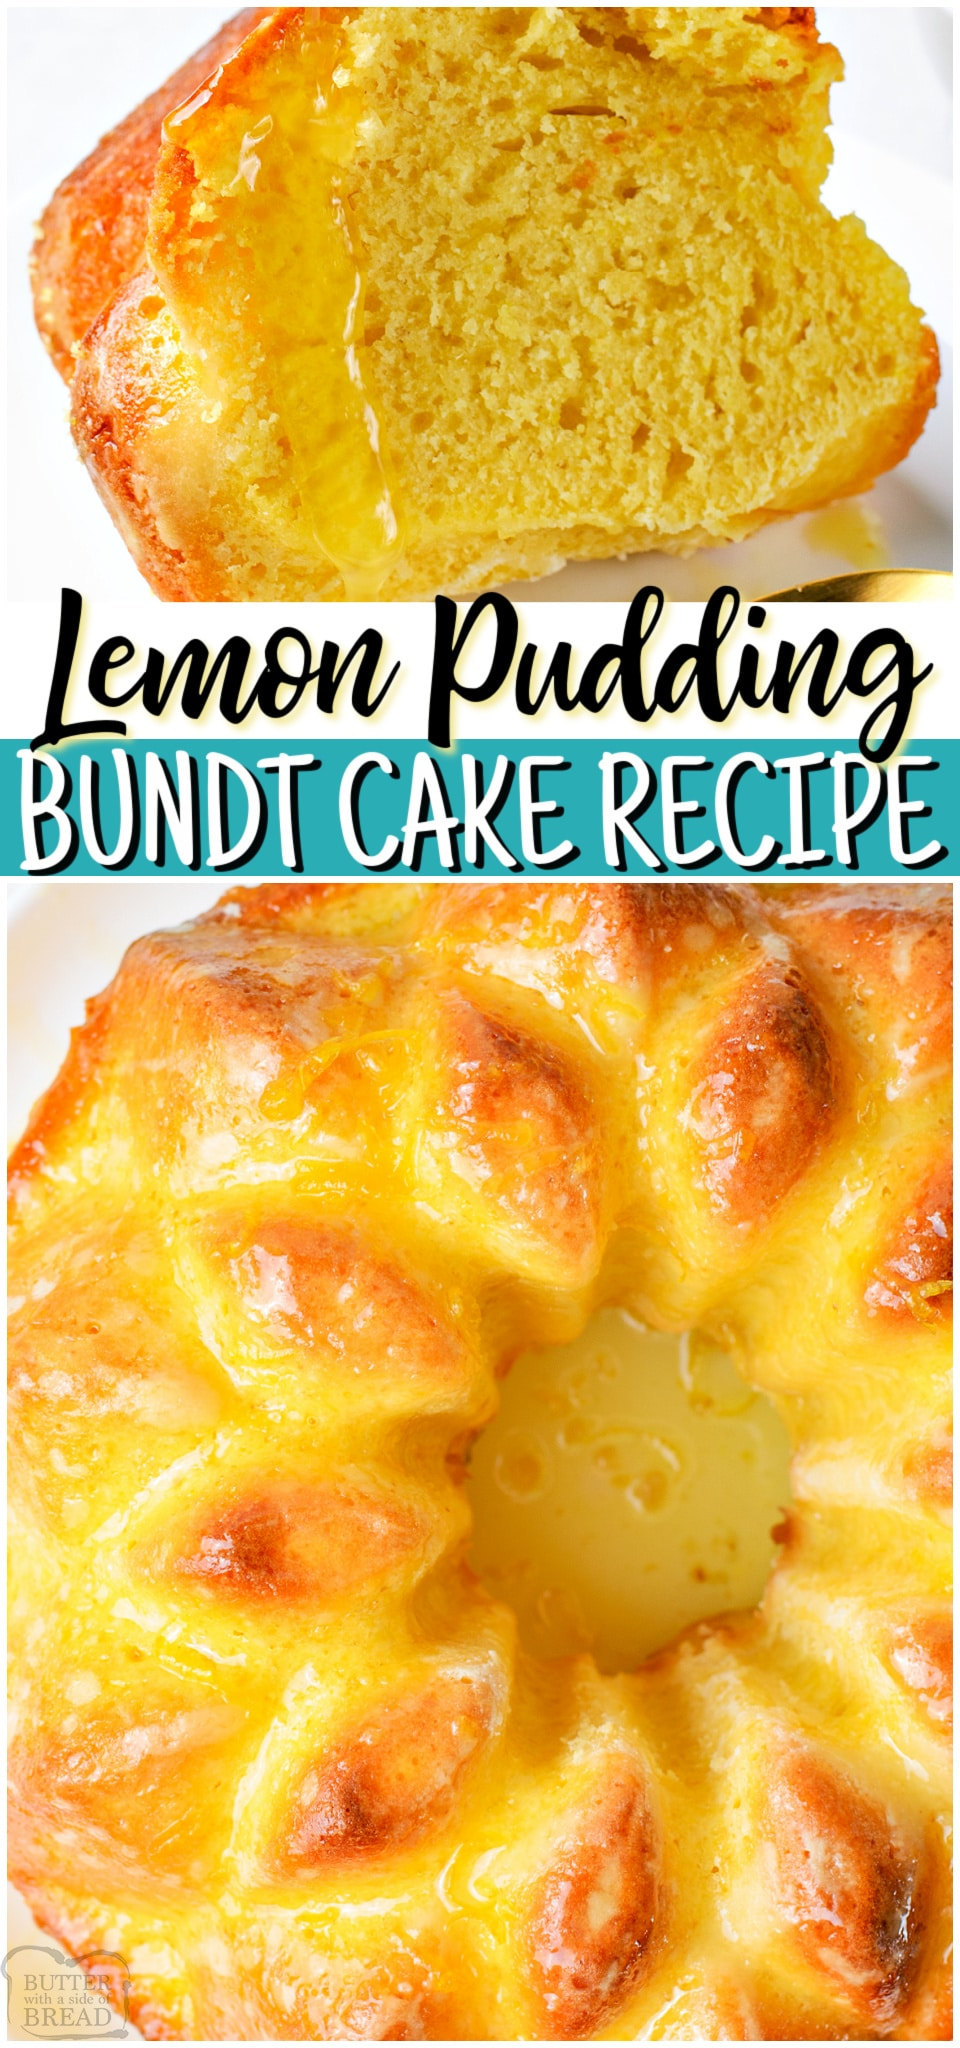 Lemon Pudding Bundt Cake ~ starts with a boxed cake mix & the final results are STUNNING! Delicious lemon bundt cake recipe that's simple to make & everyone enjoys! #lemon #cake #bundtcake #pudding #baking #dessert #easyrecipe from BUTTER WITH A SIDE OF BREAD